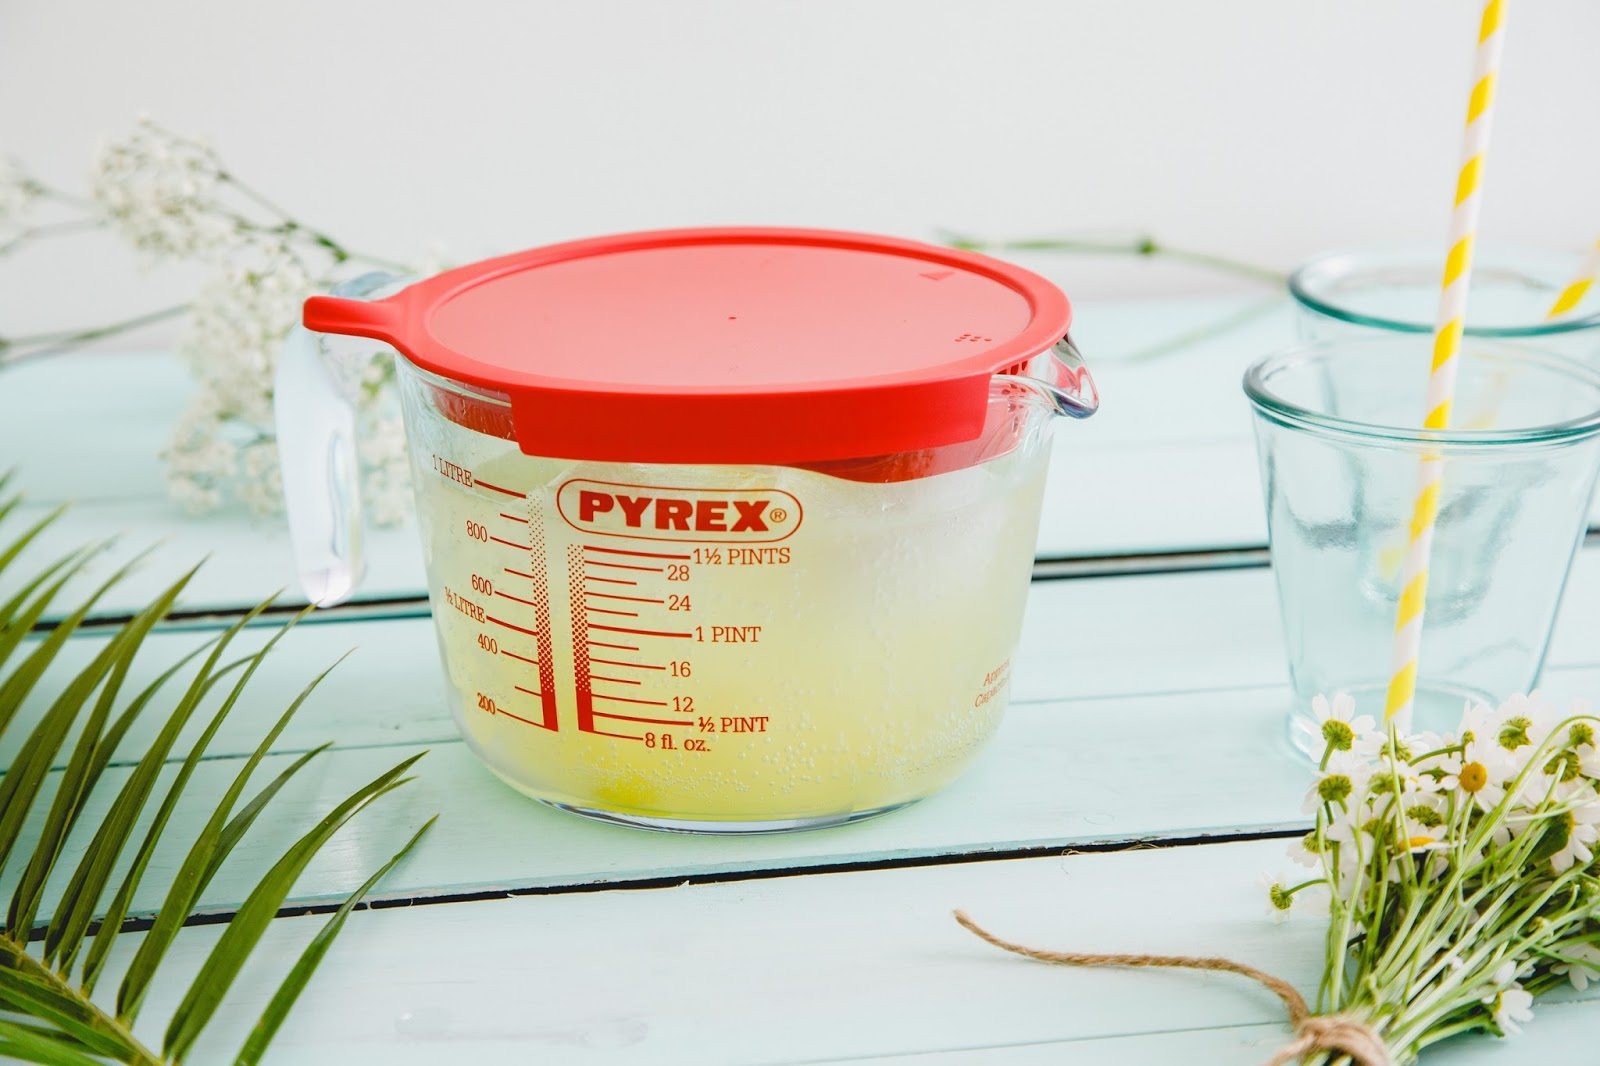 7 Summer Recipes: Alfresco Dining With Pyrex